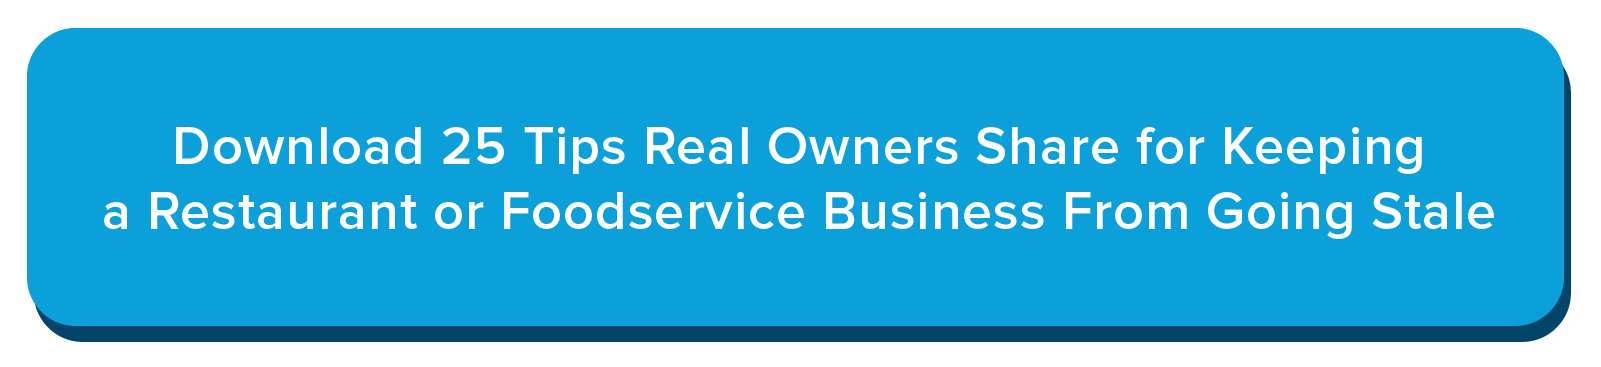 Deputy-25 Tips Real Owners Share for Keeping a Restaurant or Foodservice Business From Going Stale-19